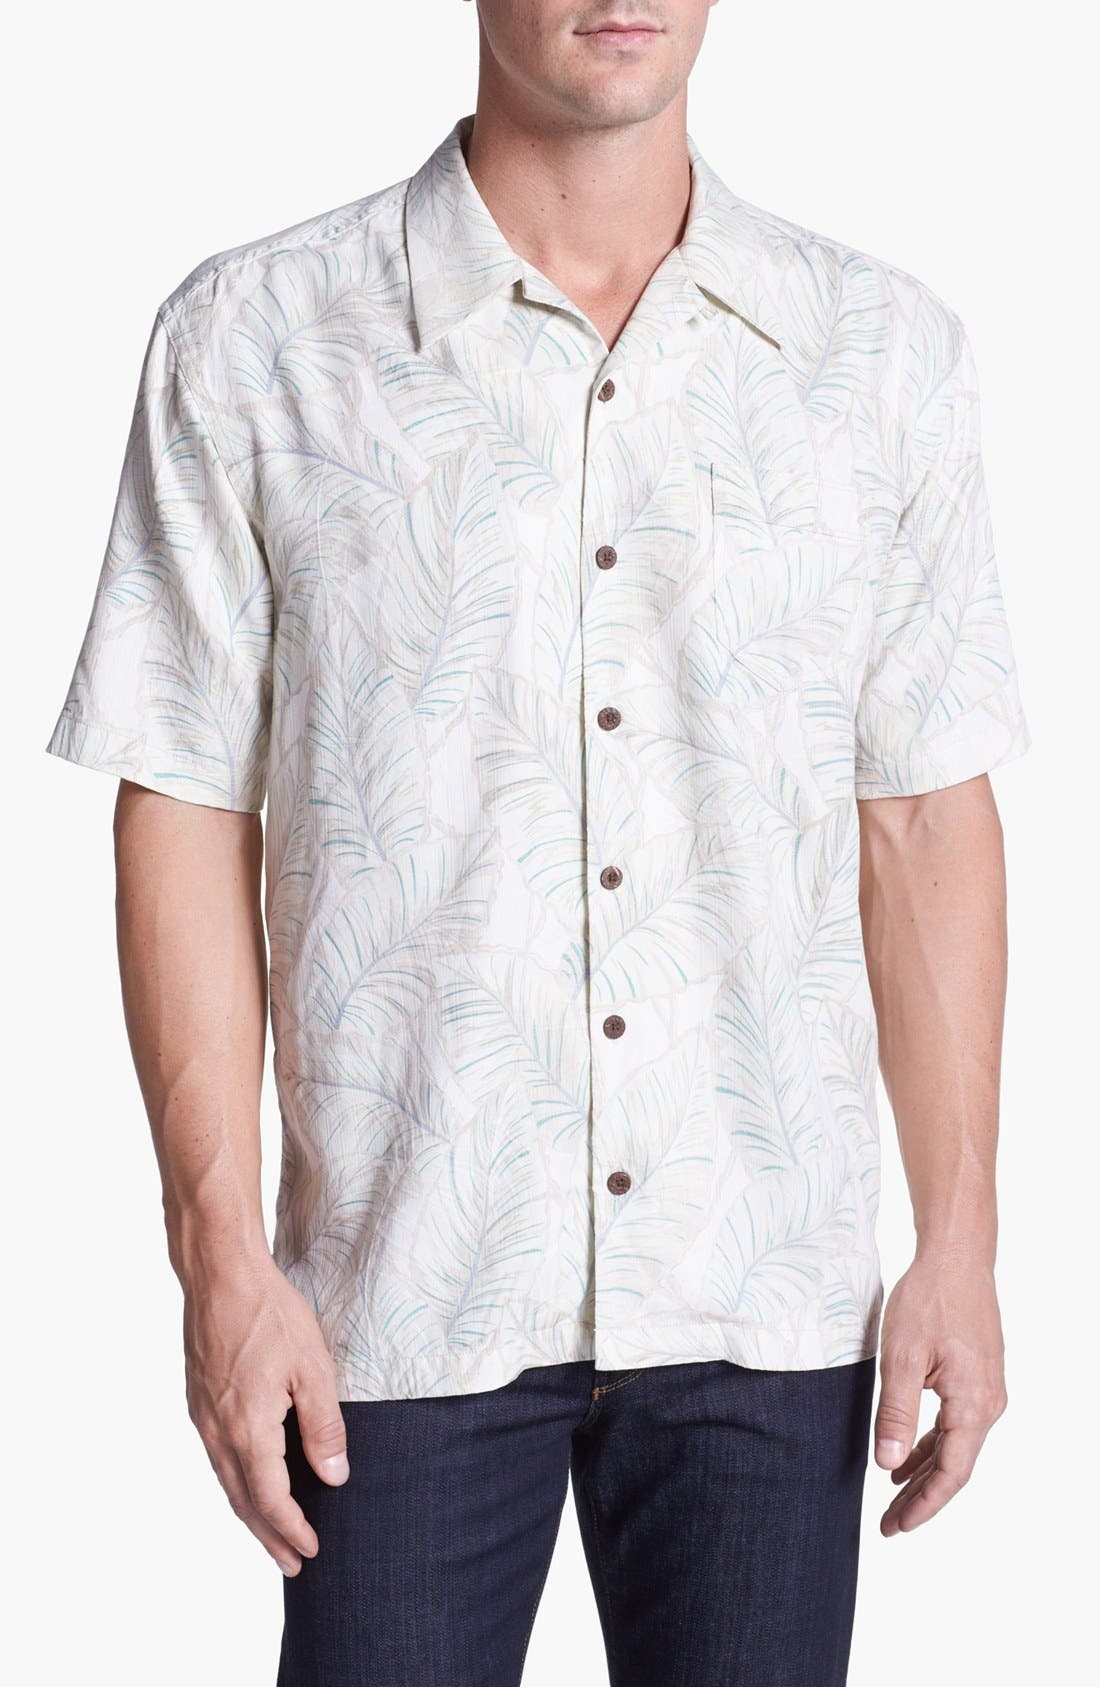 Alternate Image 1 Selected - Tommy Bahama 'Leaves of Arabia' Silk Campshirt